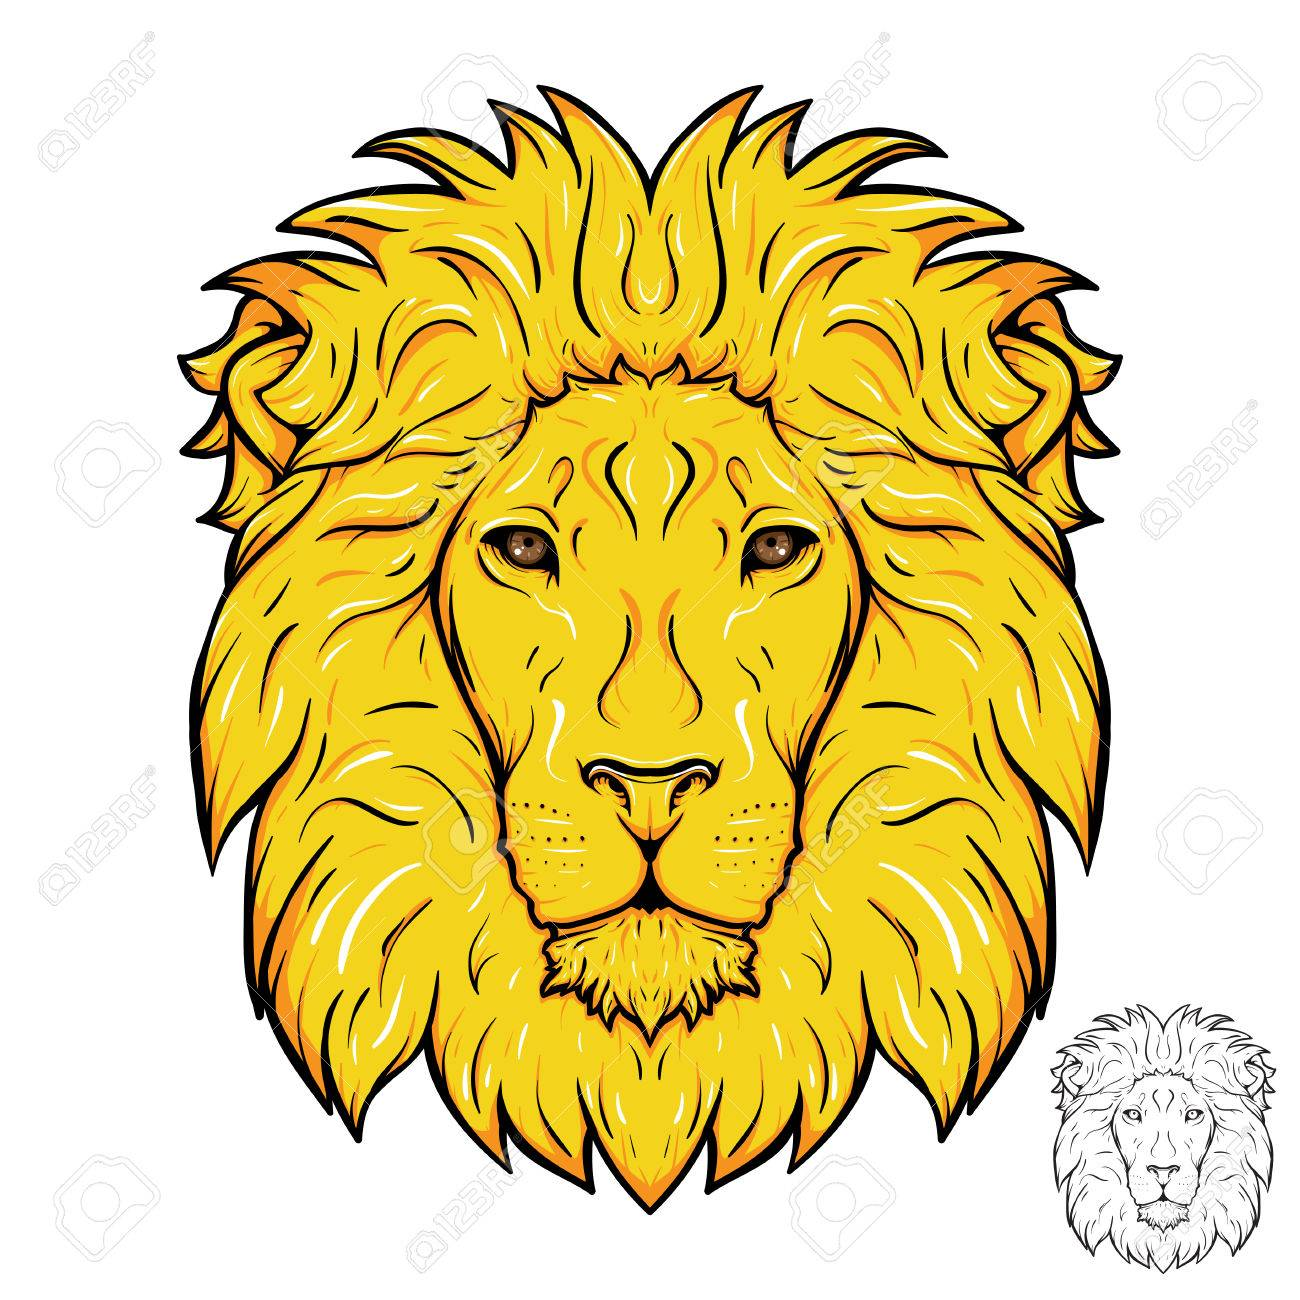 1300x1300 Lion Head. Gold Mane. Royalty Free Cliparts, Vectors, And Stock